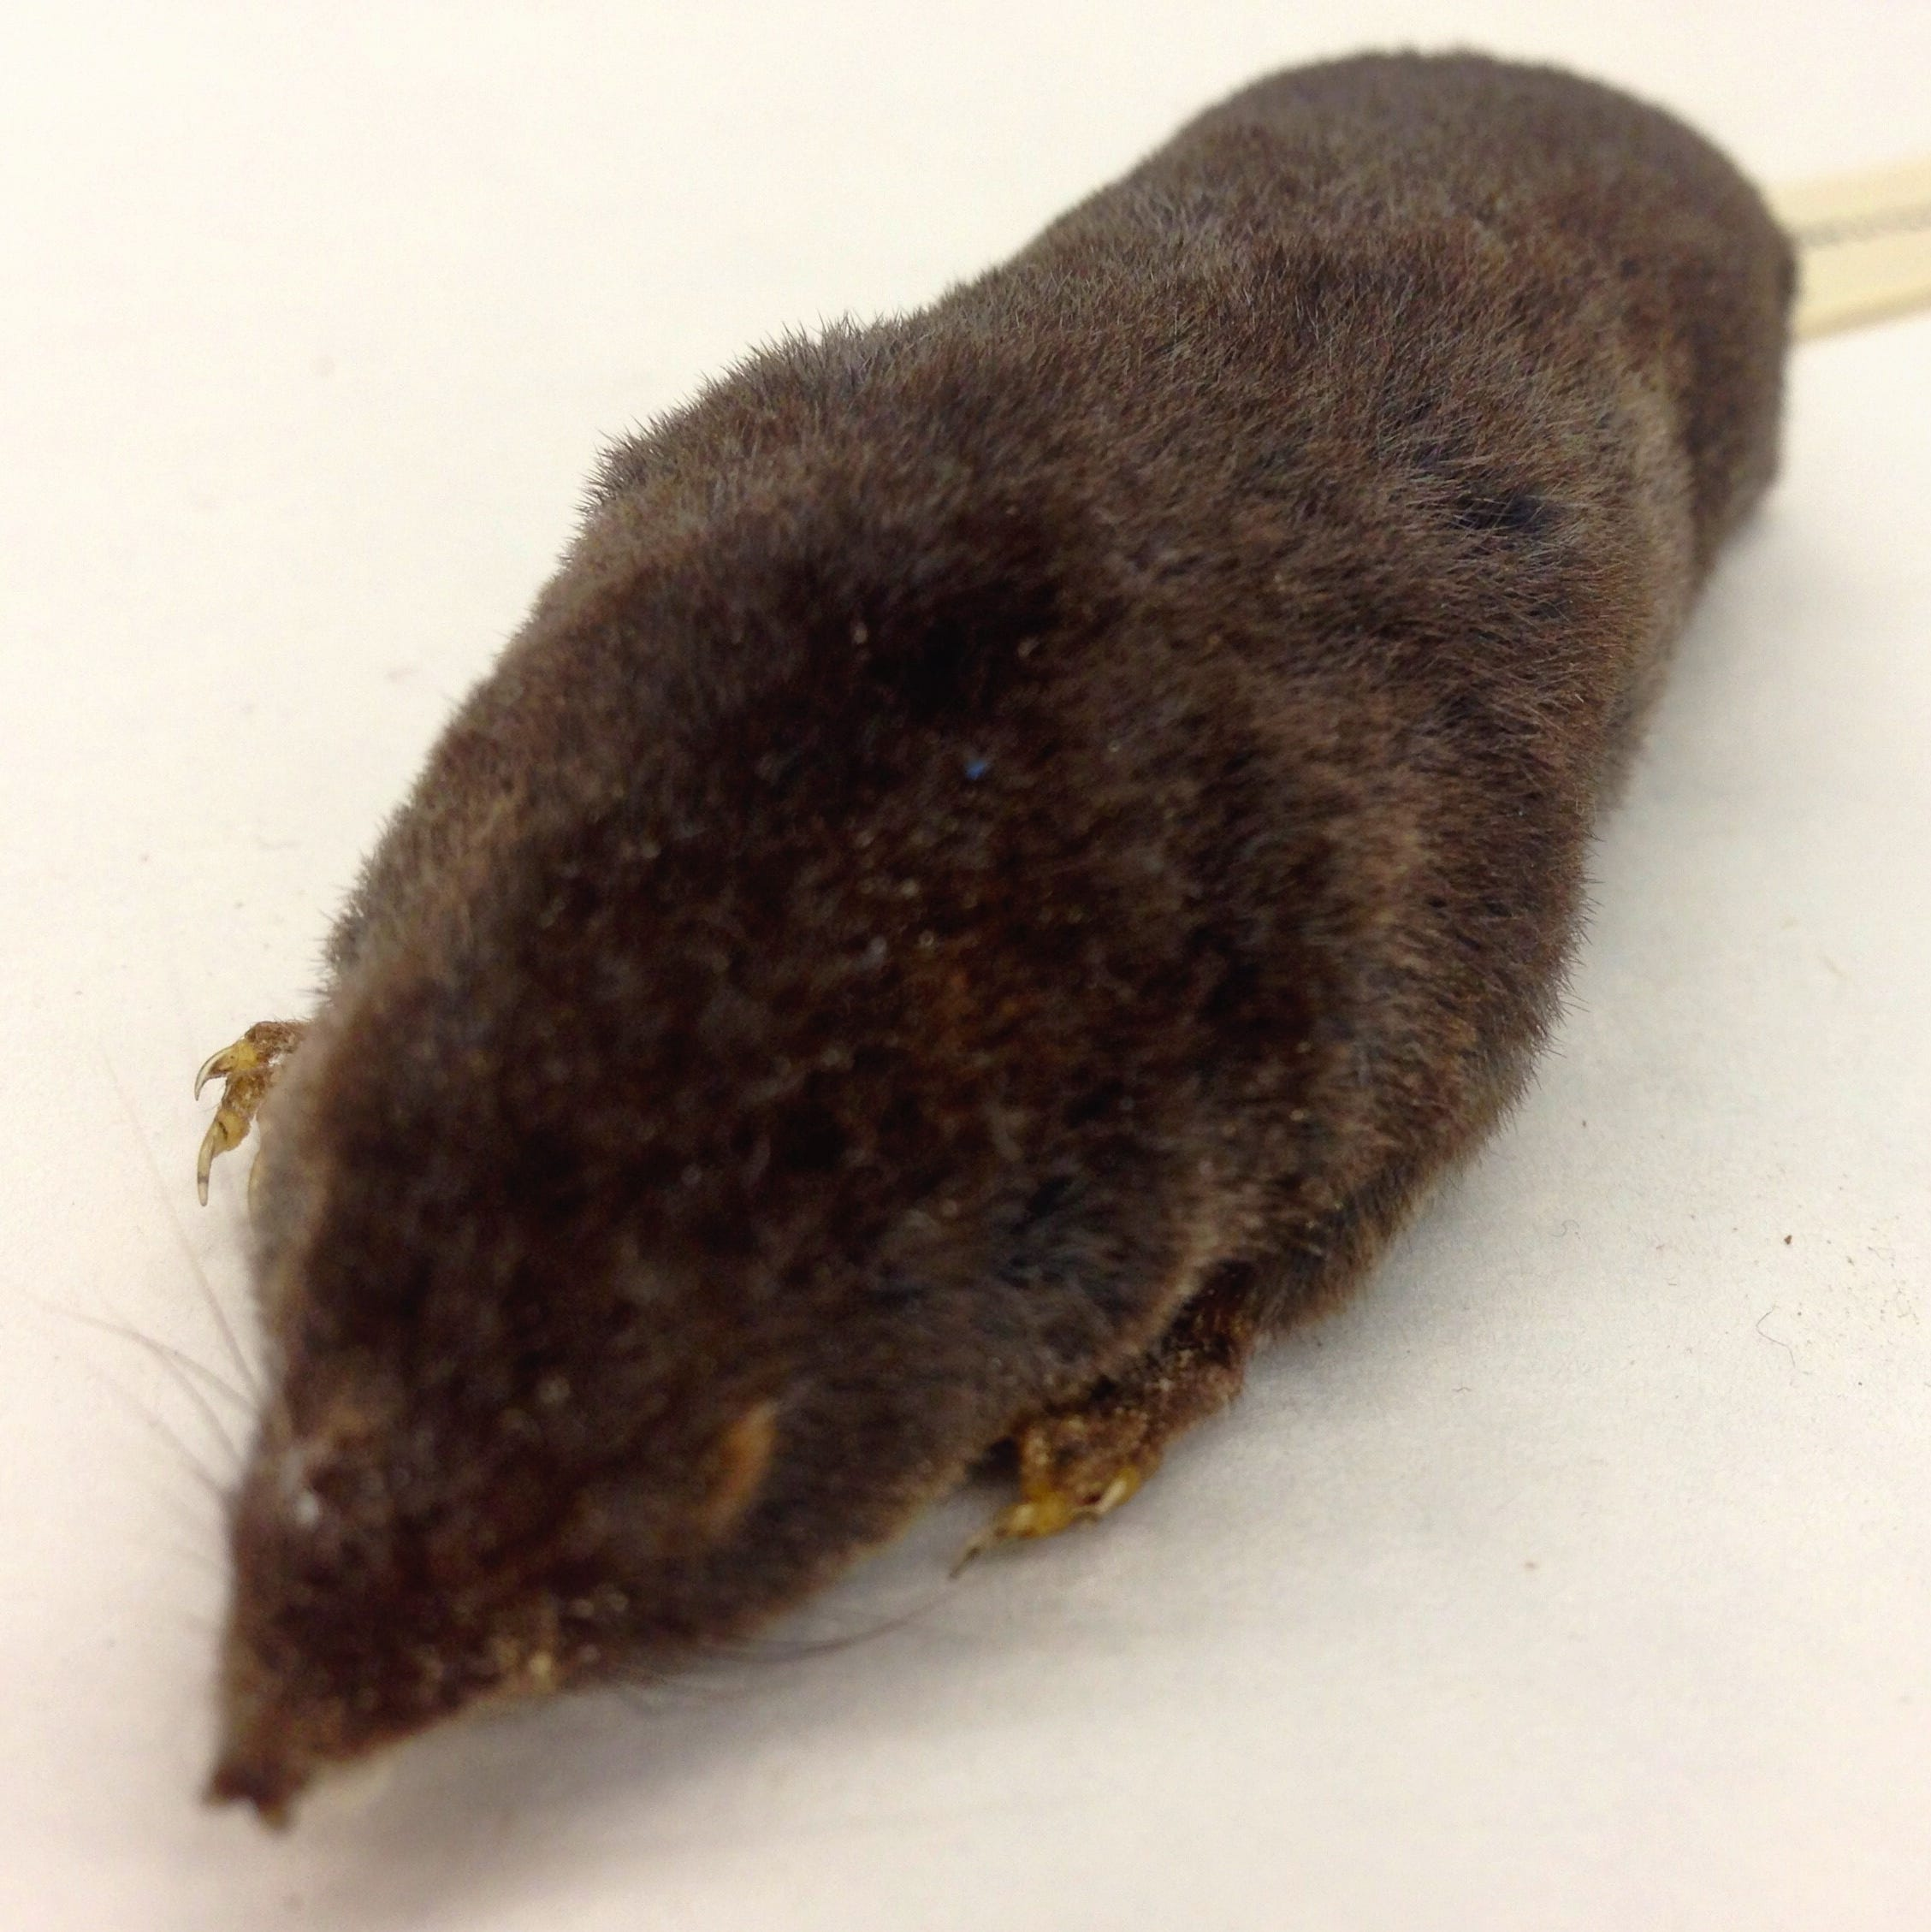 Trying to solve the mystery of the elusive Sherman's short-tailed shrew